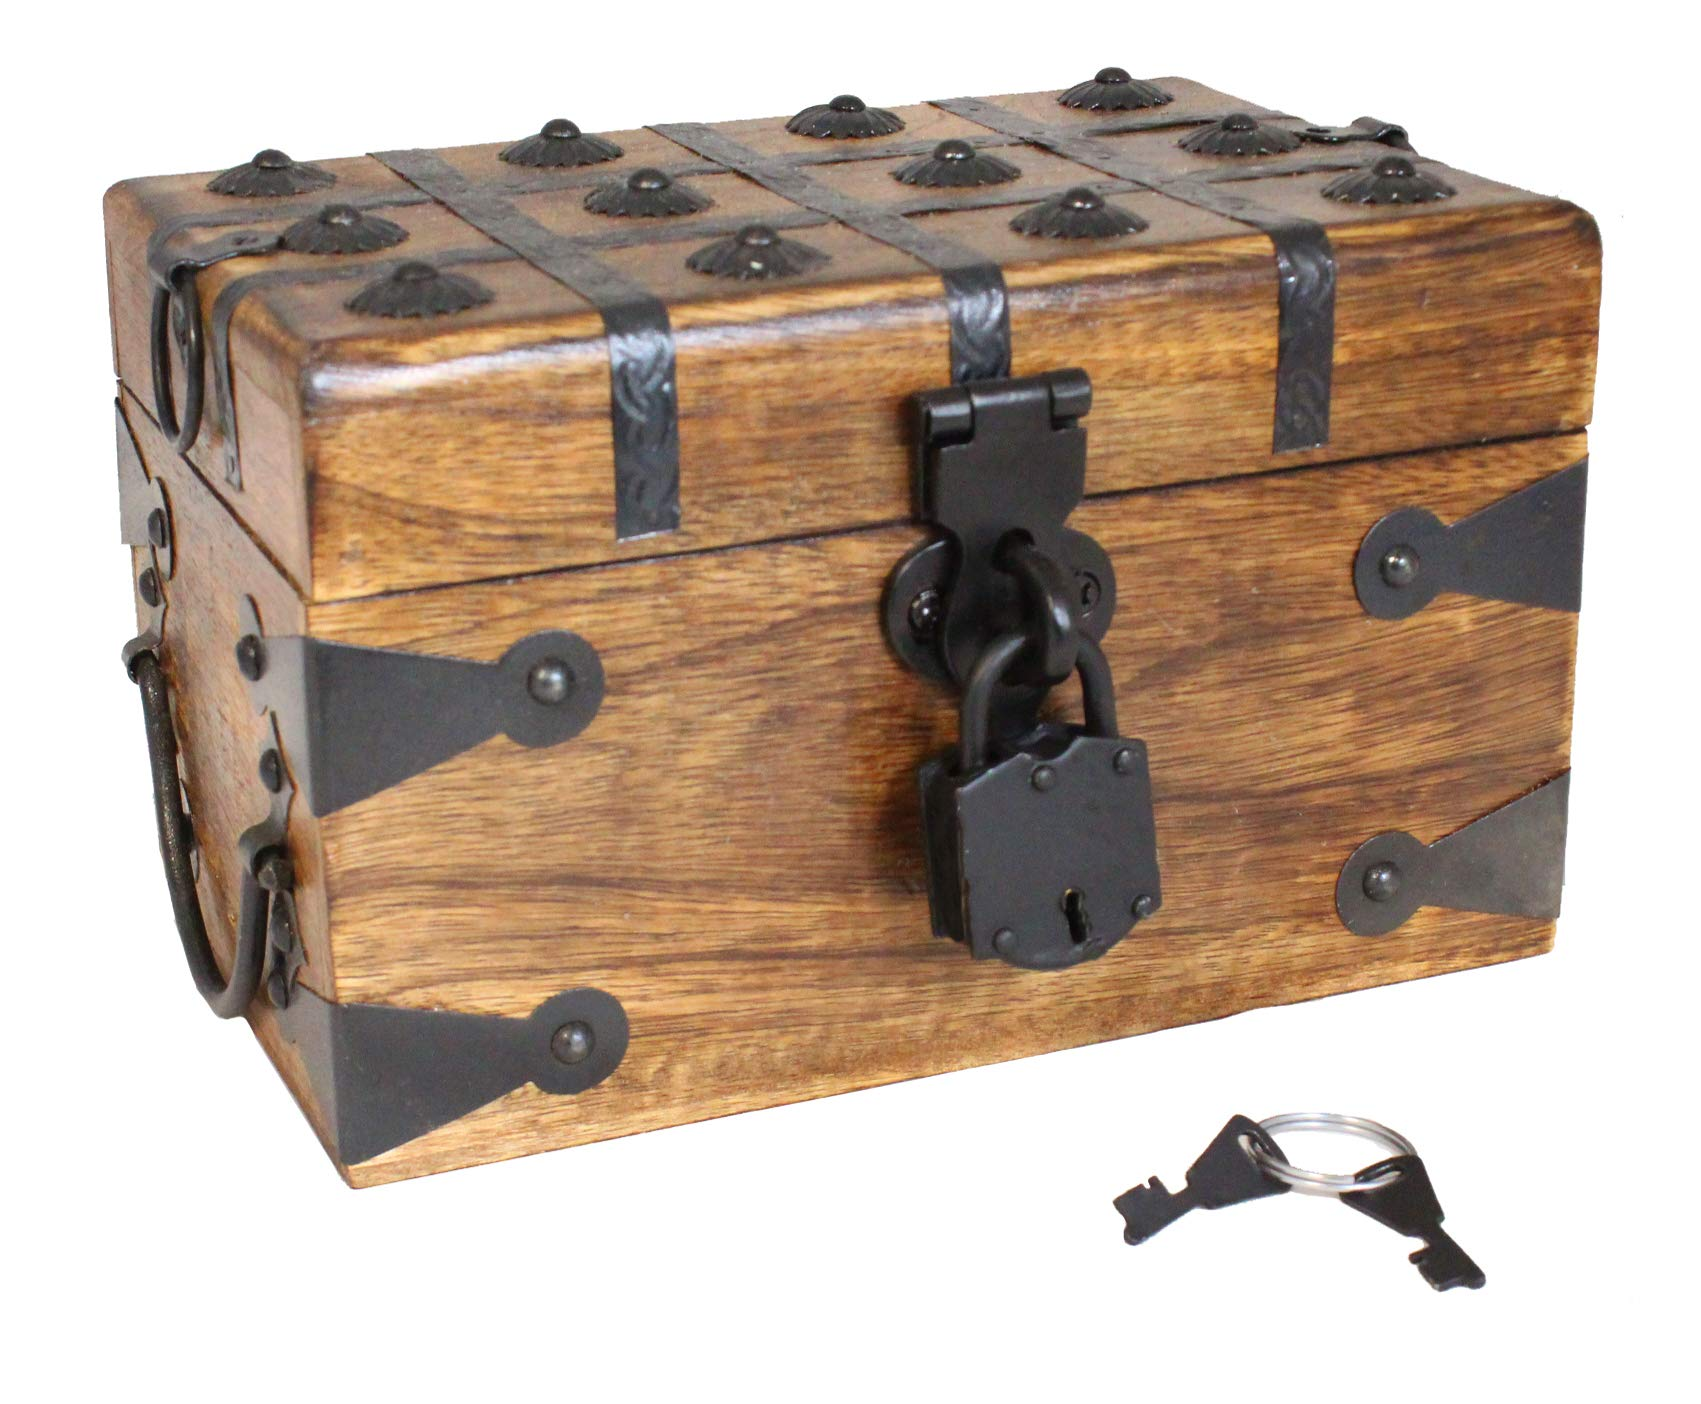 Well Pack Box Wooden Pirate Treasure Chest 8'' x 6'' x 5'' Medium Authentic Includes Antique Strong Iron Lock With 2 Skeleton Keys Great For Parties, Halloween, Holidays and Birthdays by Well Pack Box